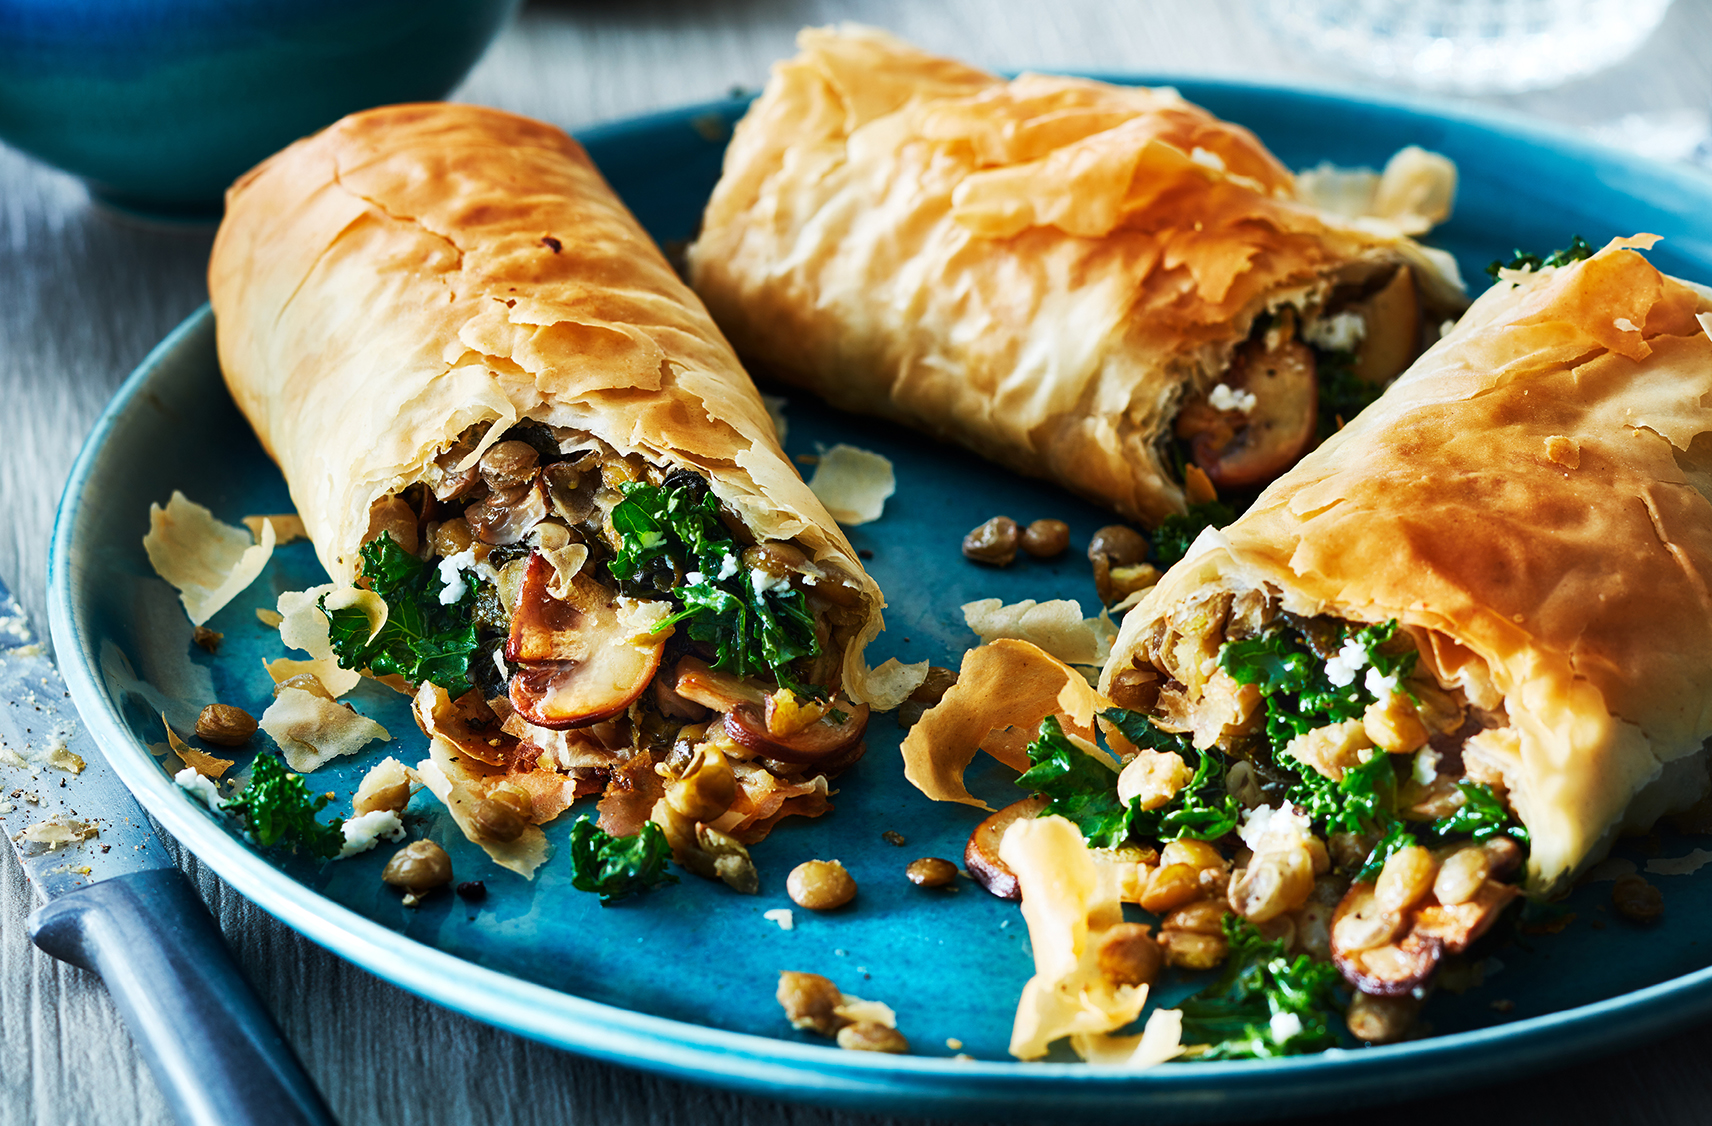 three strudels stuffed with savoury kale and mushroom mixture.  served on a blue plate